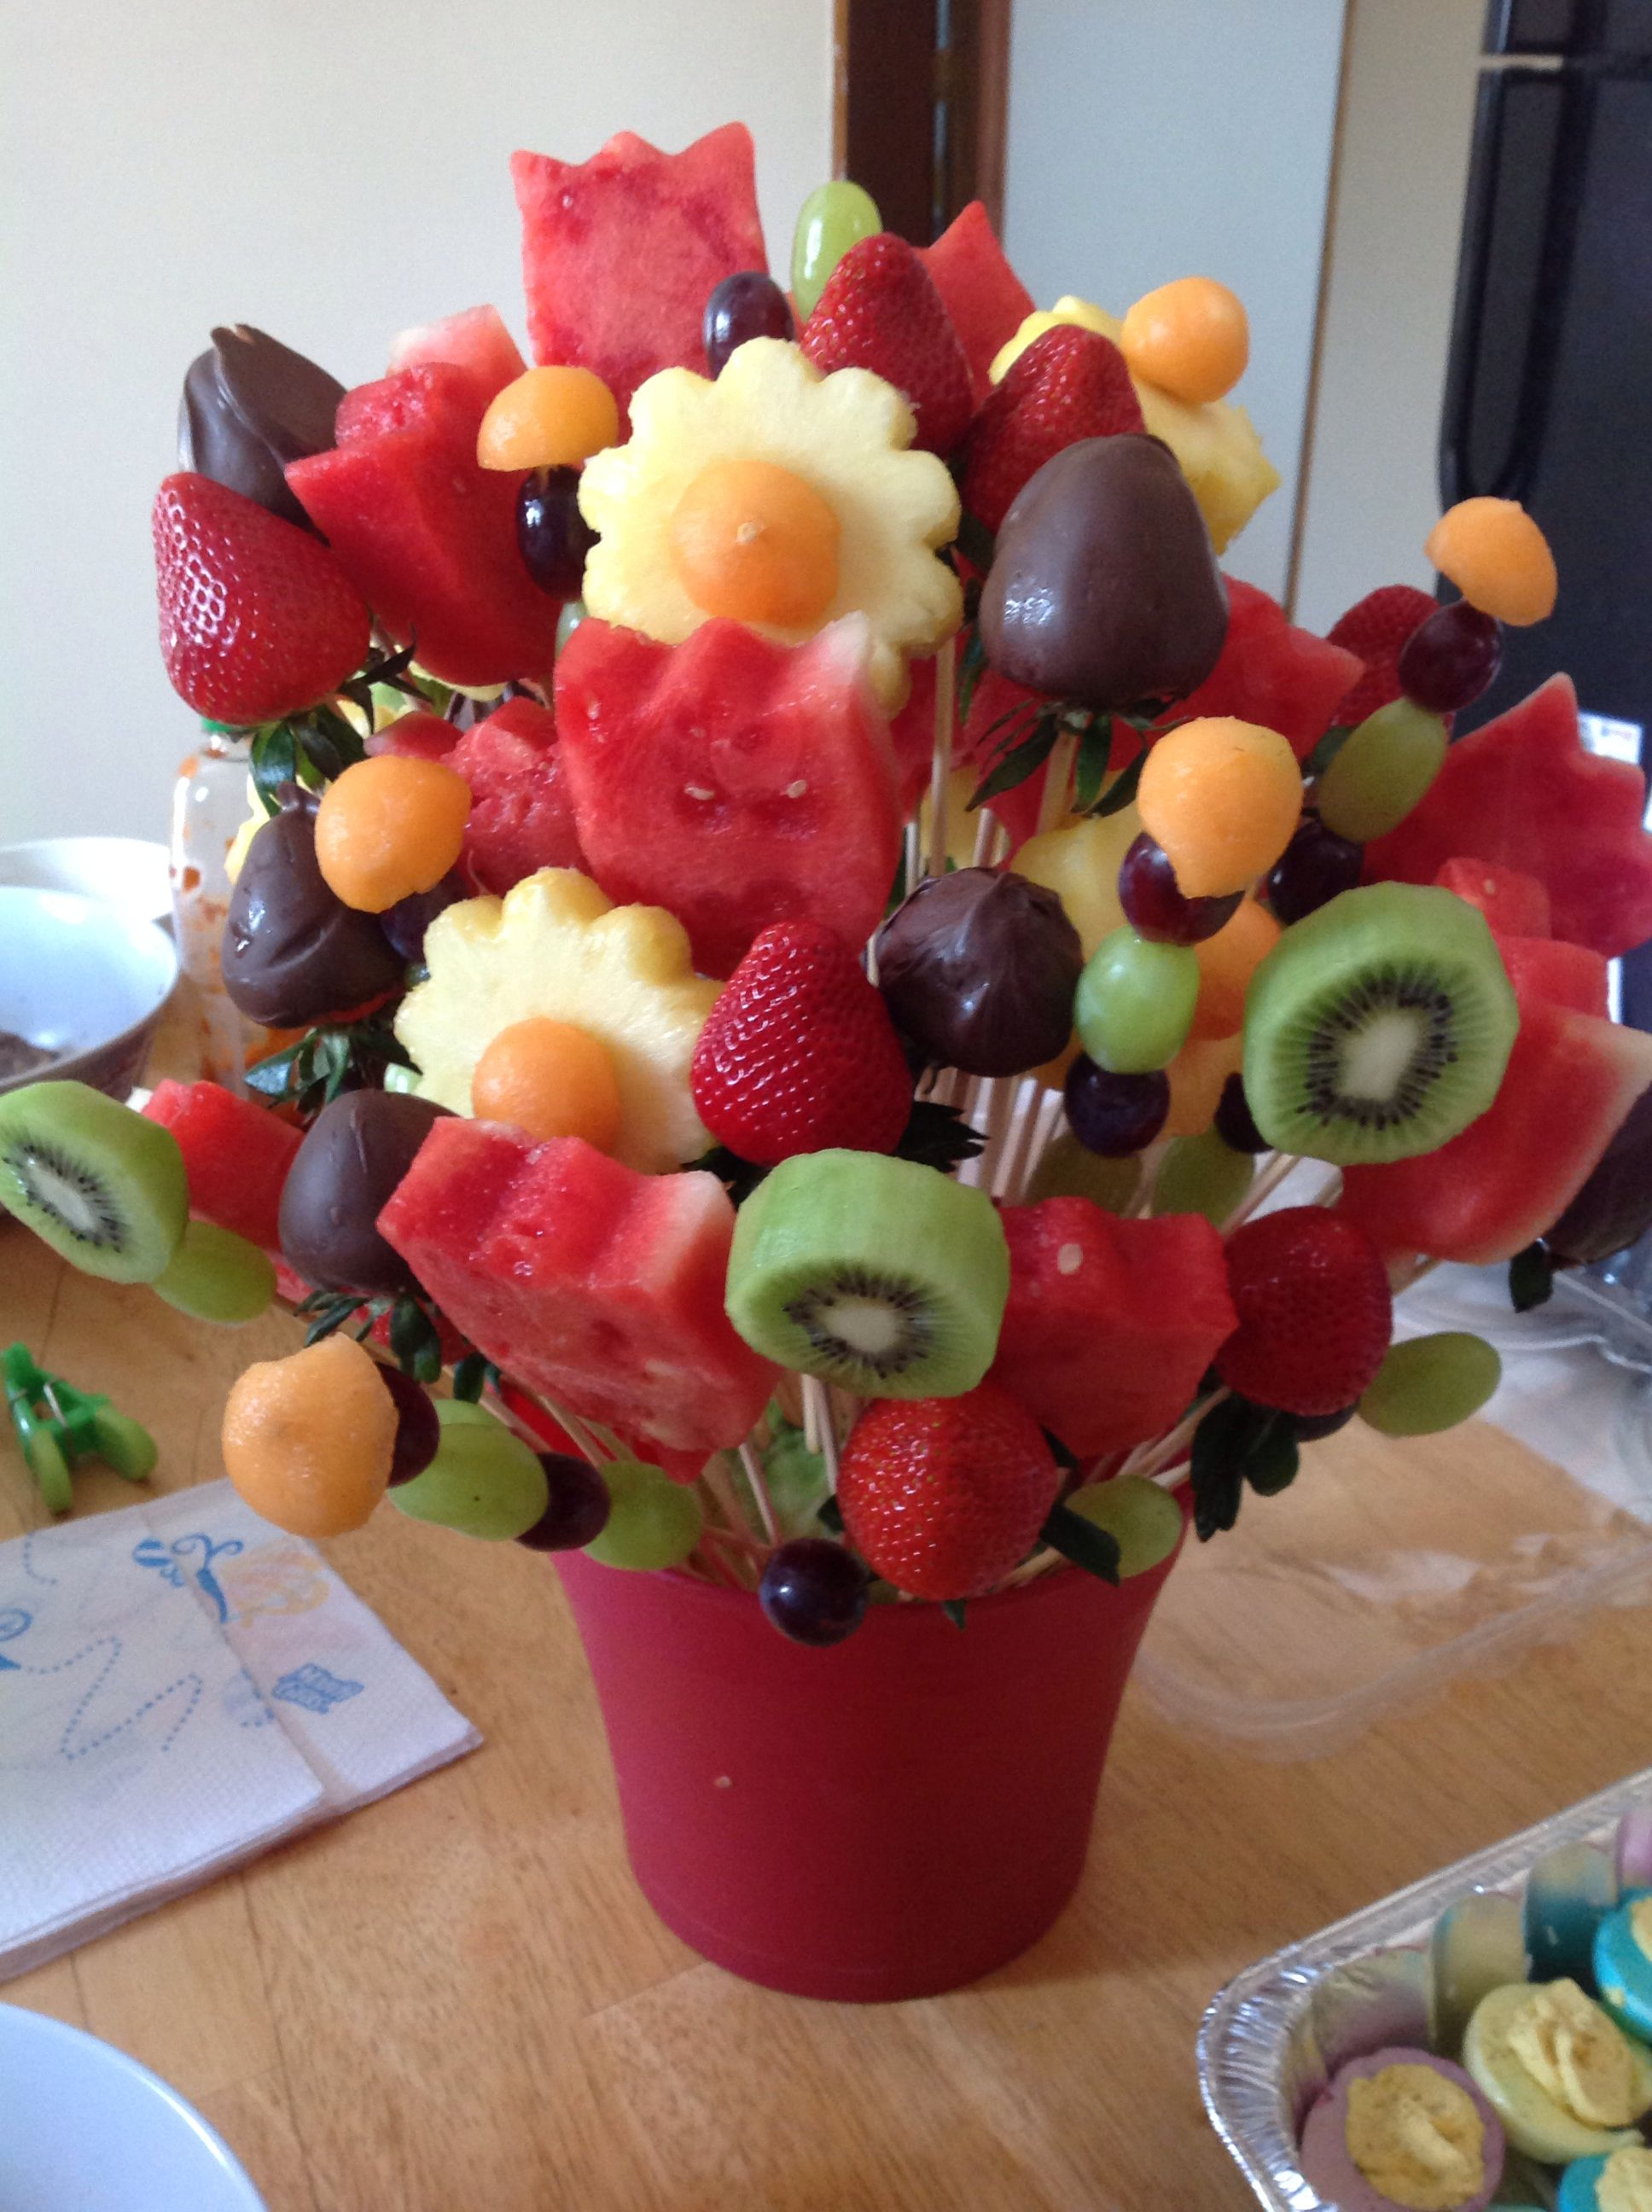 diy edible arrangement with fresh fruits and no citric. | healthy